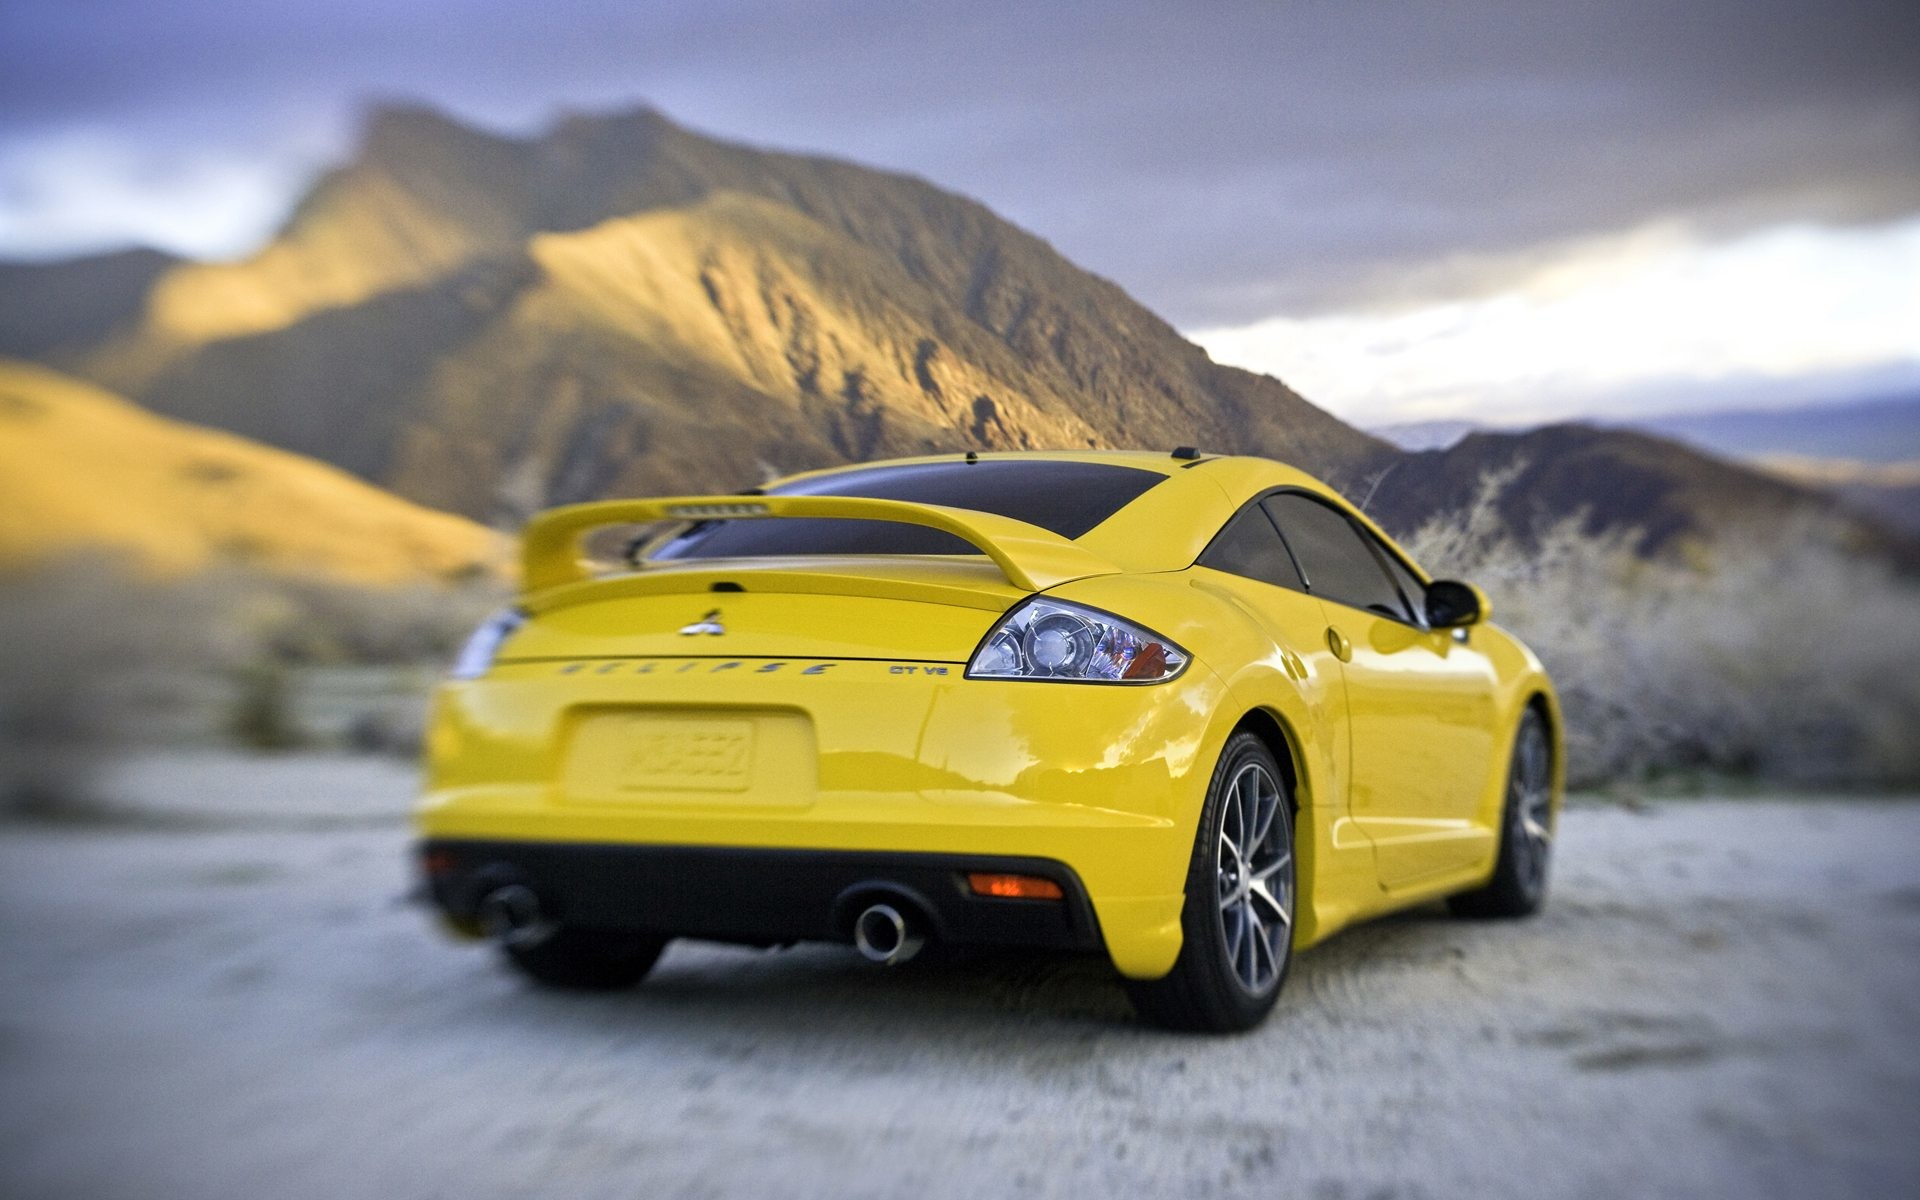 1920x1200 Mitsubishi Eclipse GT V6. Car News, Reviews And Latest Gadgets  For The Auto